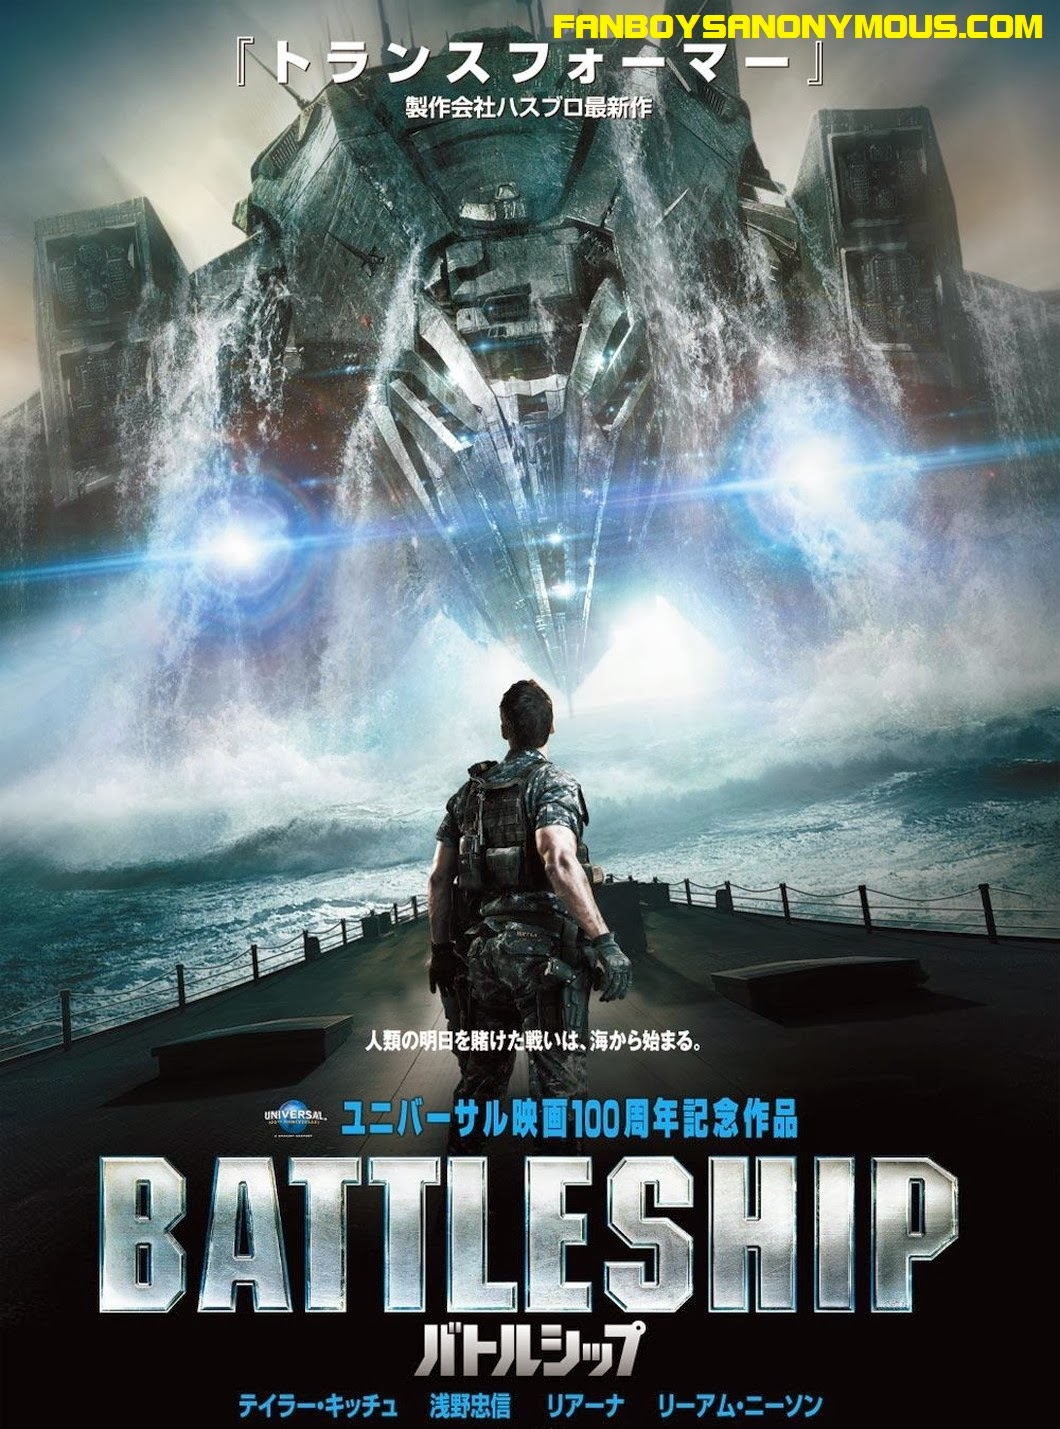 Taylor Kitch Battleship alien sci-fi action movie